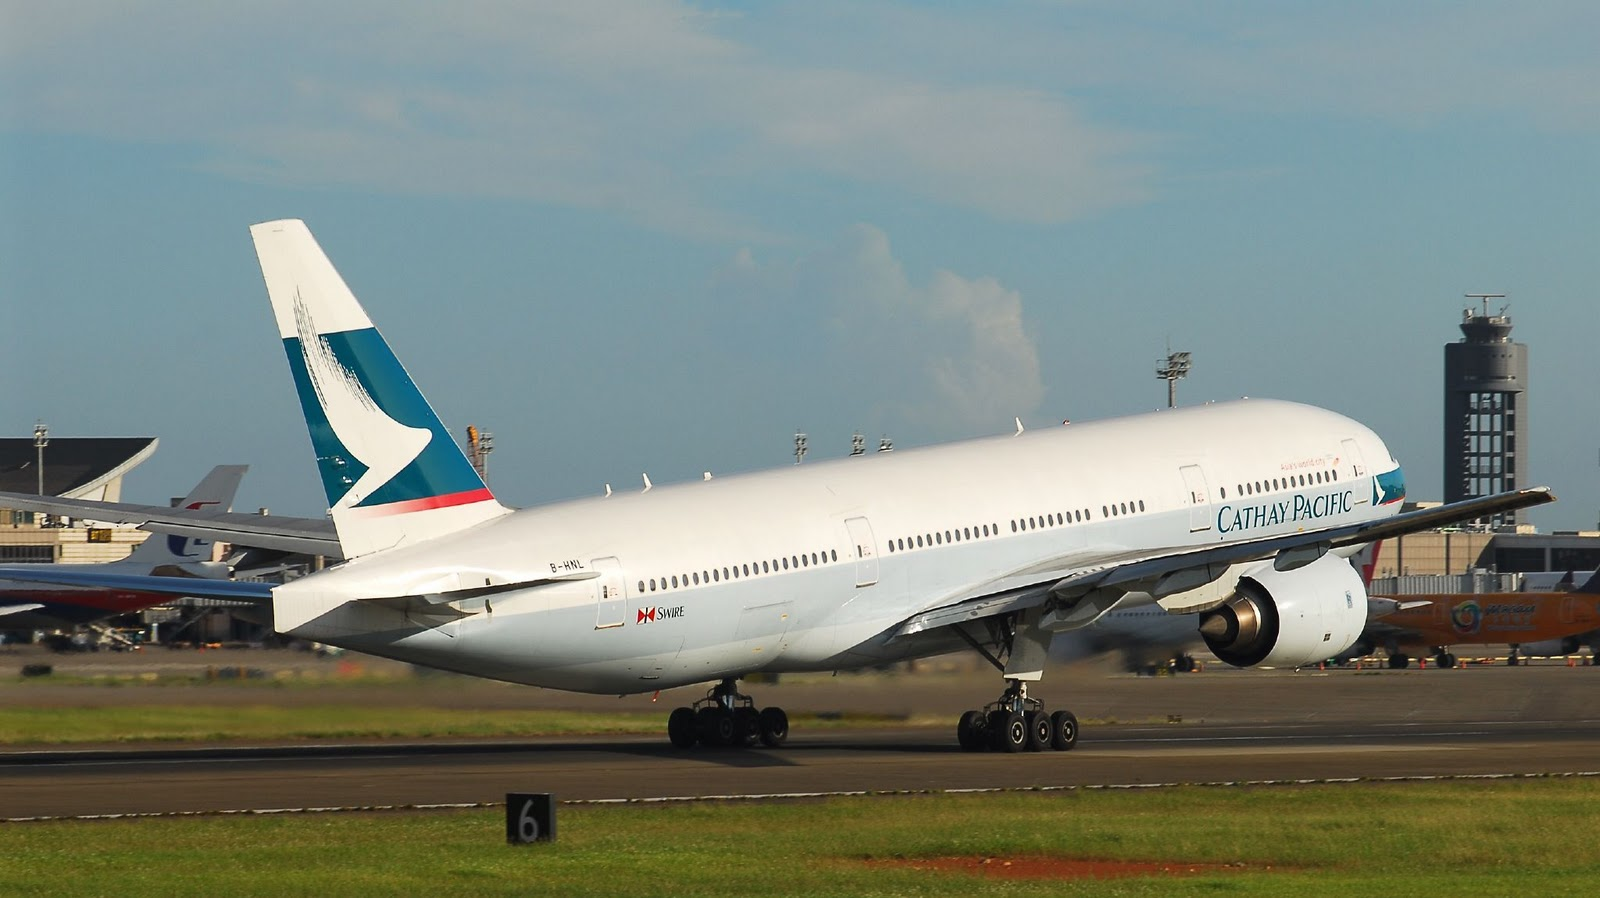 cathay personals Cathay pacific's regular scheduled wellcamp airport freight flights will return to normal after the chinese new year after a number of flights were cancelled.